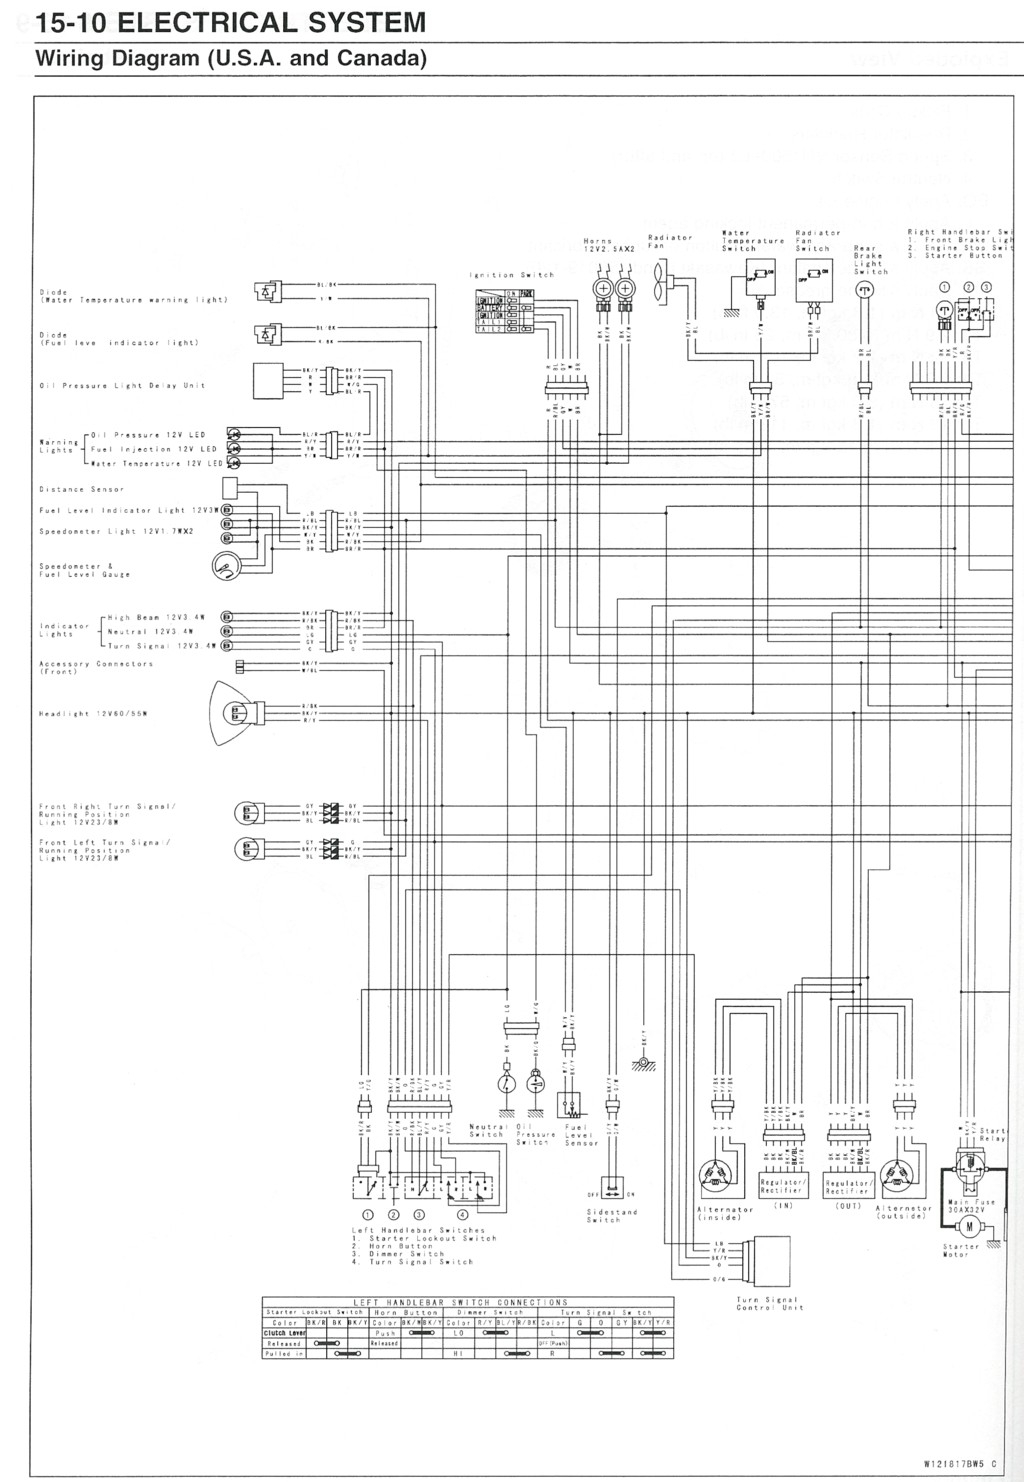 nomad_wiring_diagram_carbed_p1 vulcan wiring diagrams gadget's fixit page Kawasaki Vulcan 800 Wiring Diagram at metegol.co